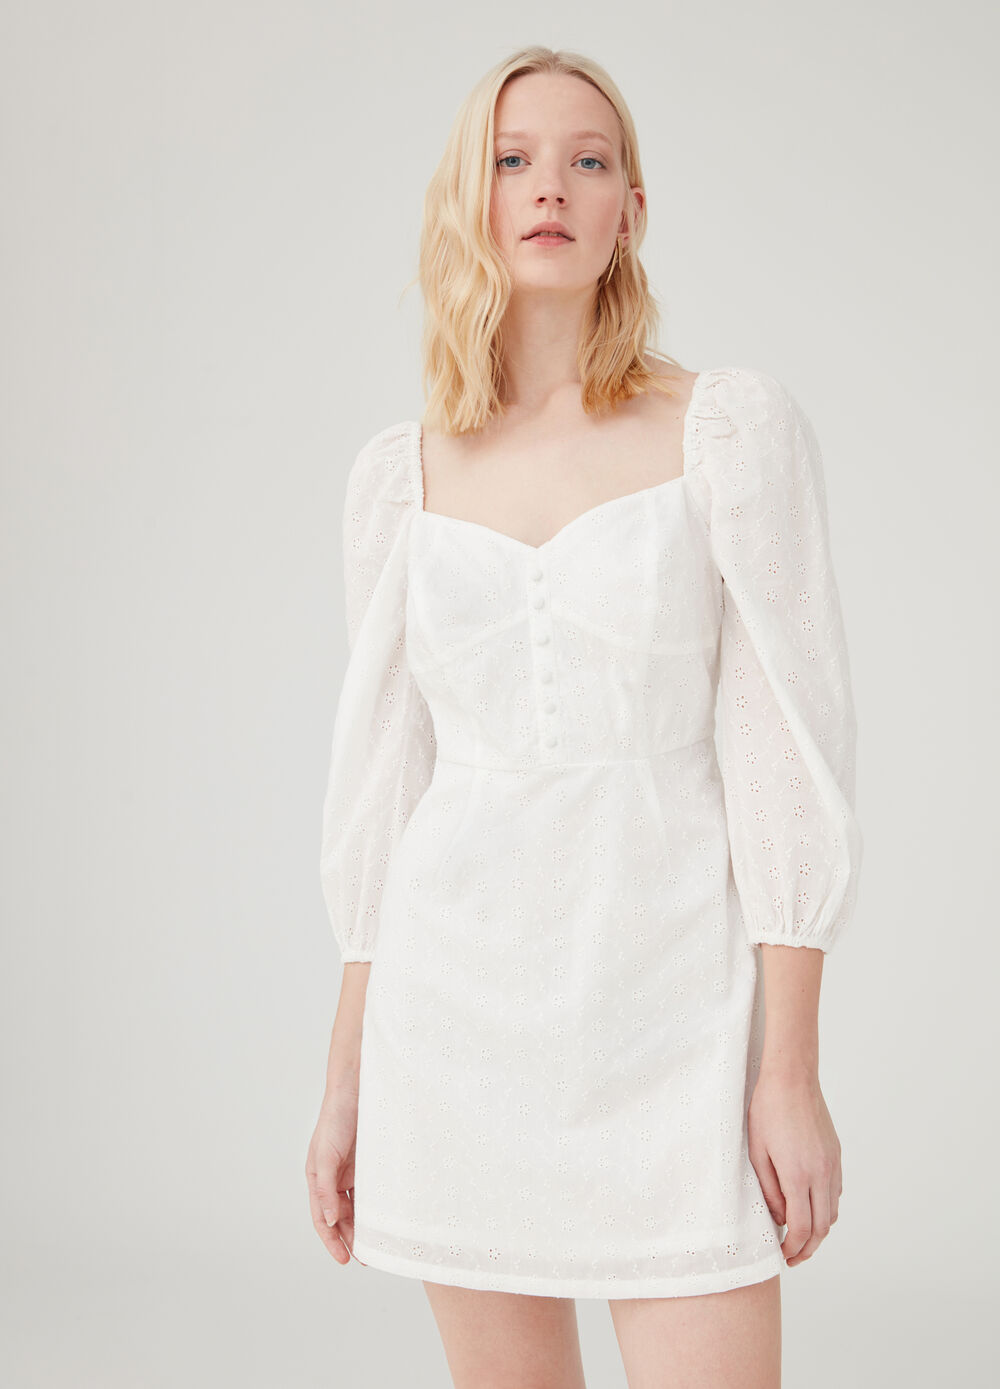 Broderie anglaise dress with three-quarter sleeves